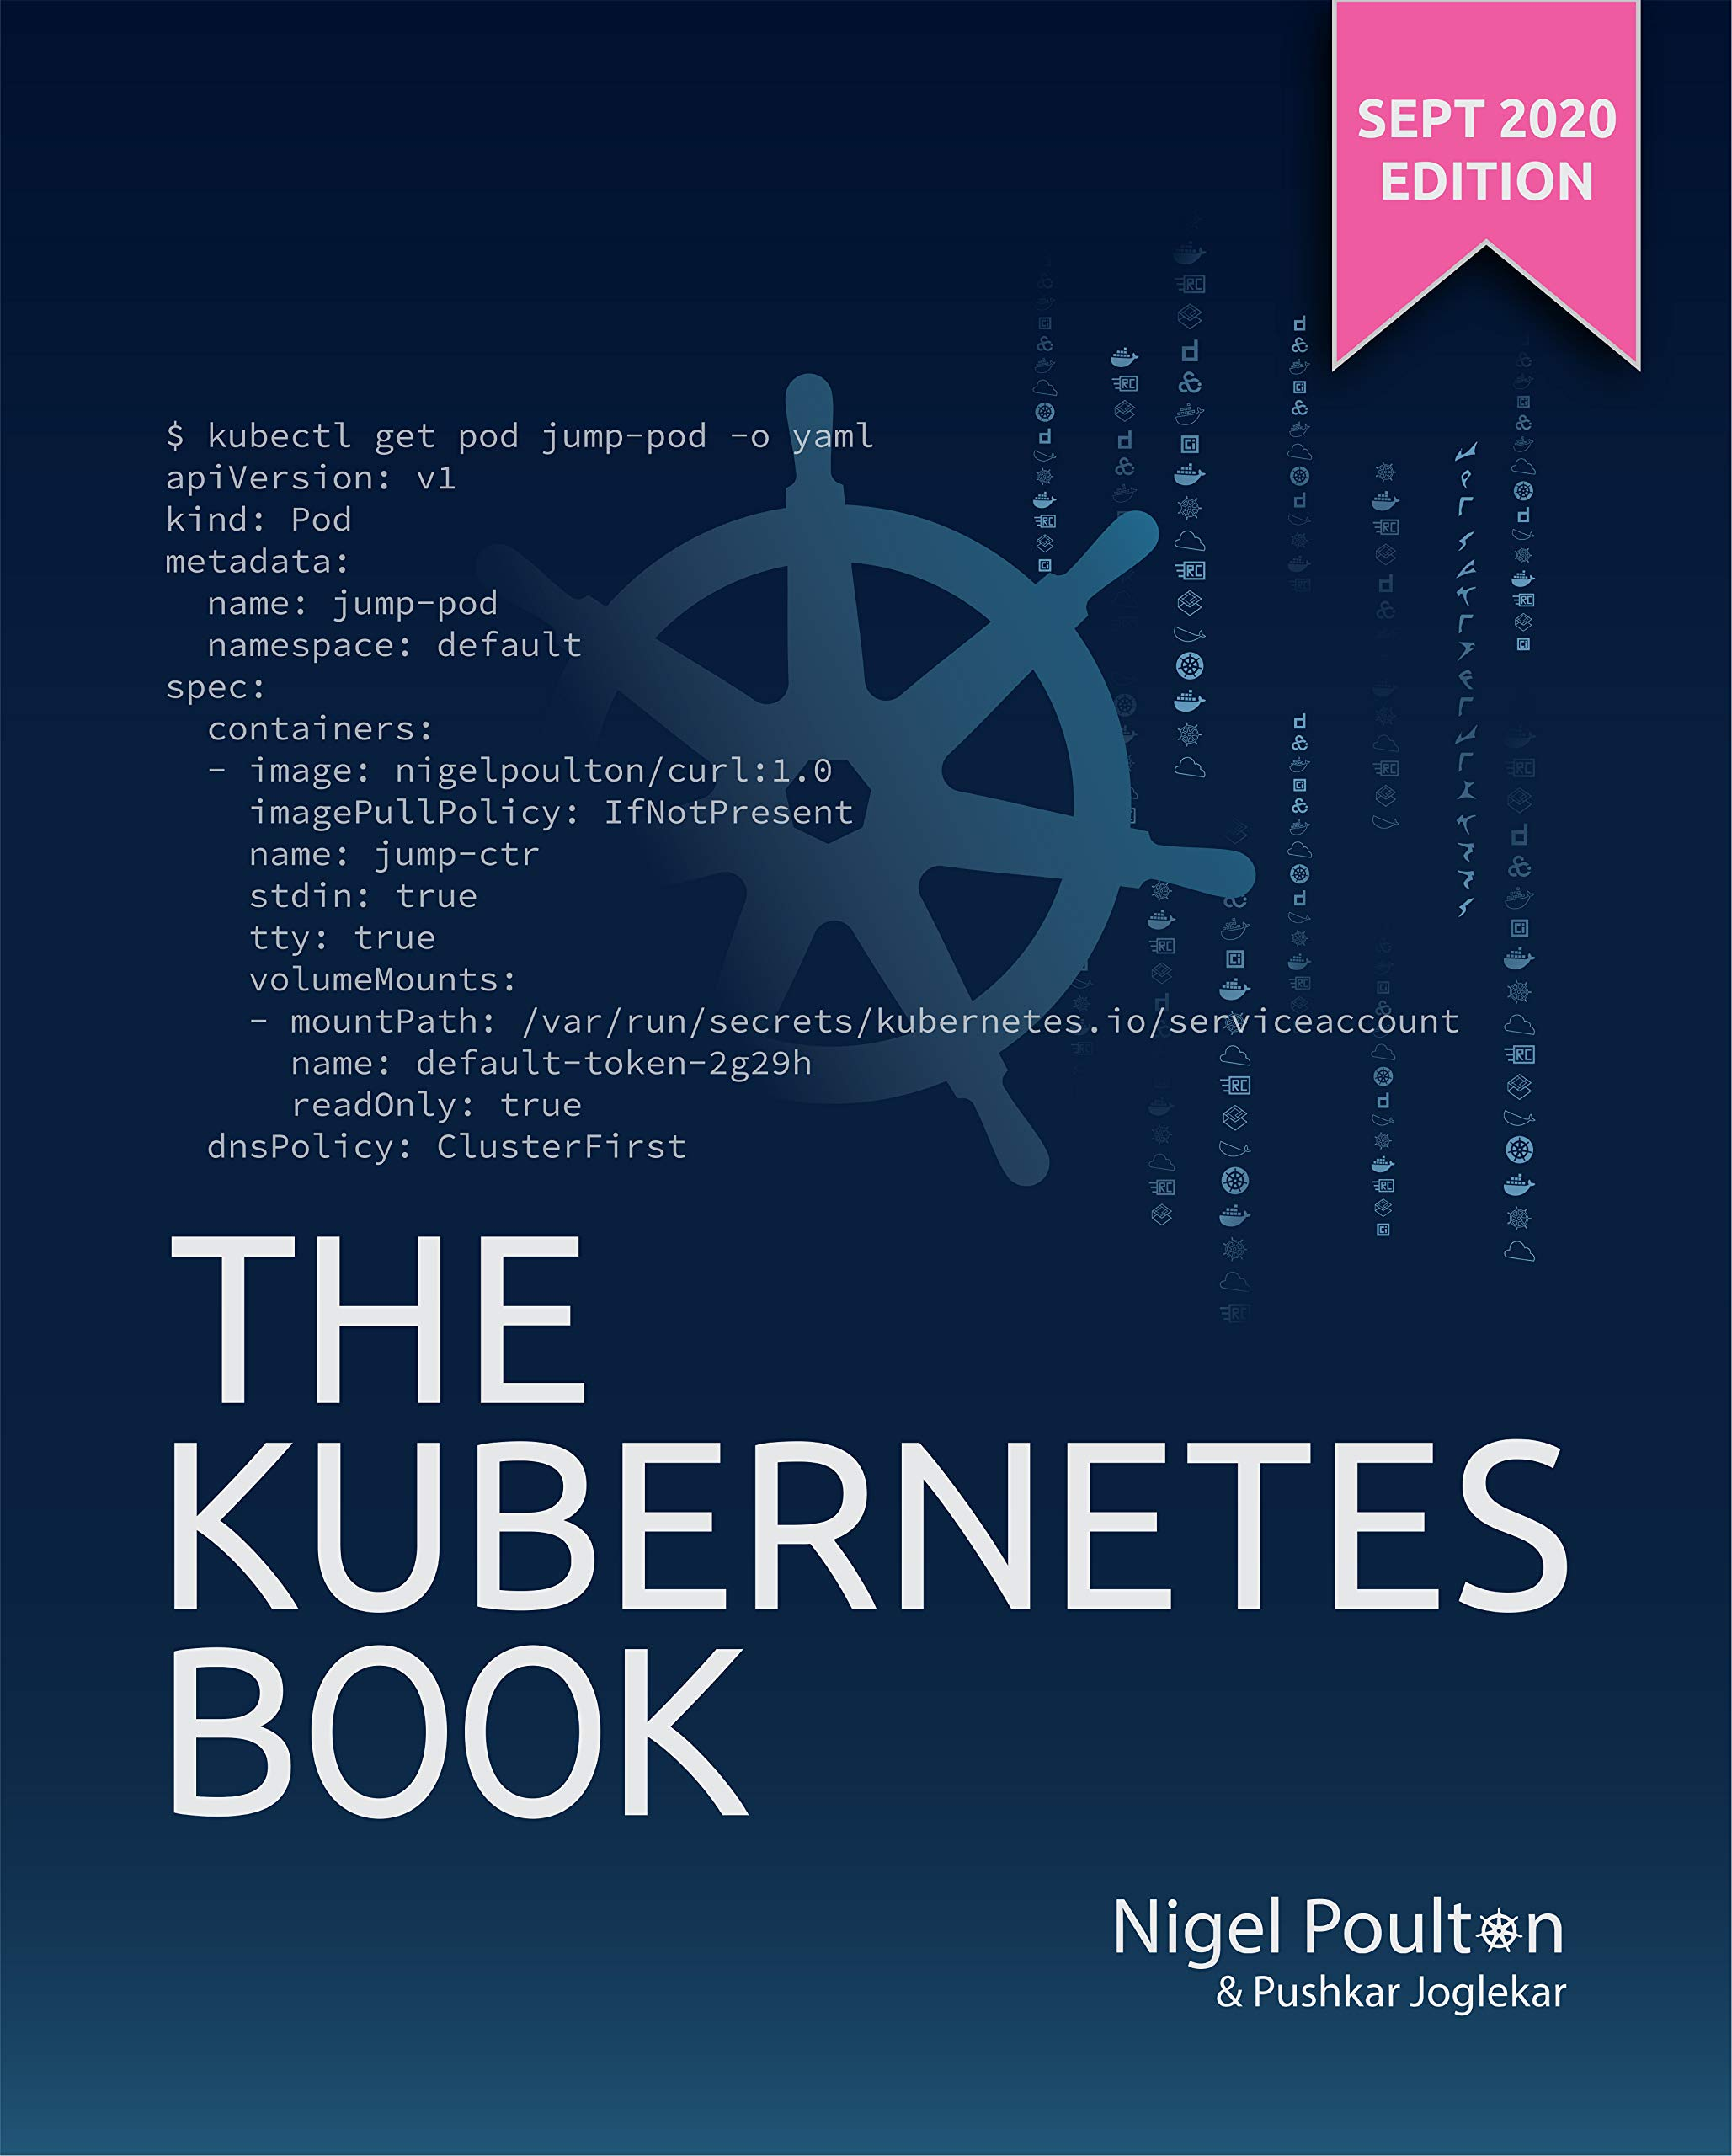 Image OfThe Kubernetes Book: Updated September 2020 (English Edition)